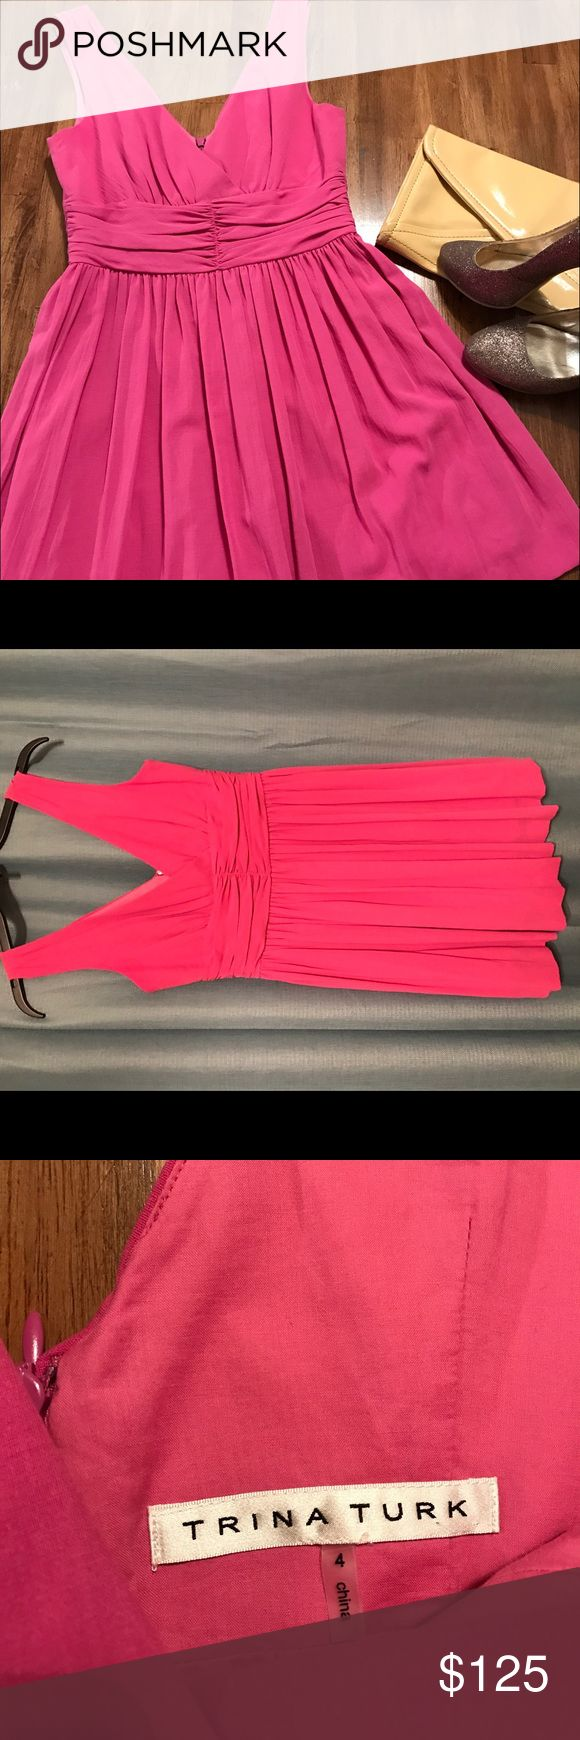 Pink Trina Turk Cocktail Dress Excellent condition Trina Turk Cocktail Mini Dress. The color is a purple-ish pink. Perfect for a wedding, or can even dress it down on a spring day with a denim jacket. Trina Turk Dresses Mini